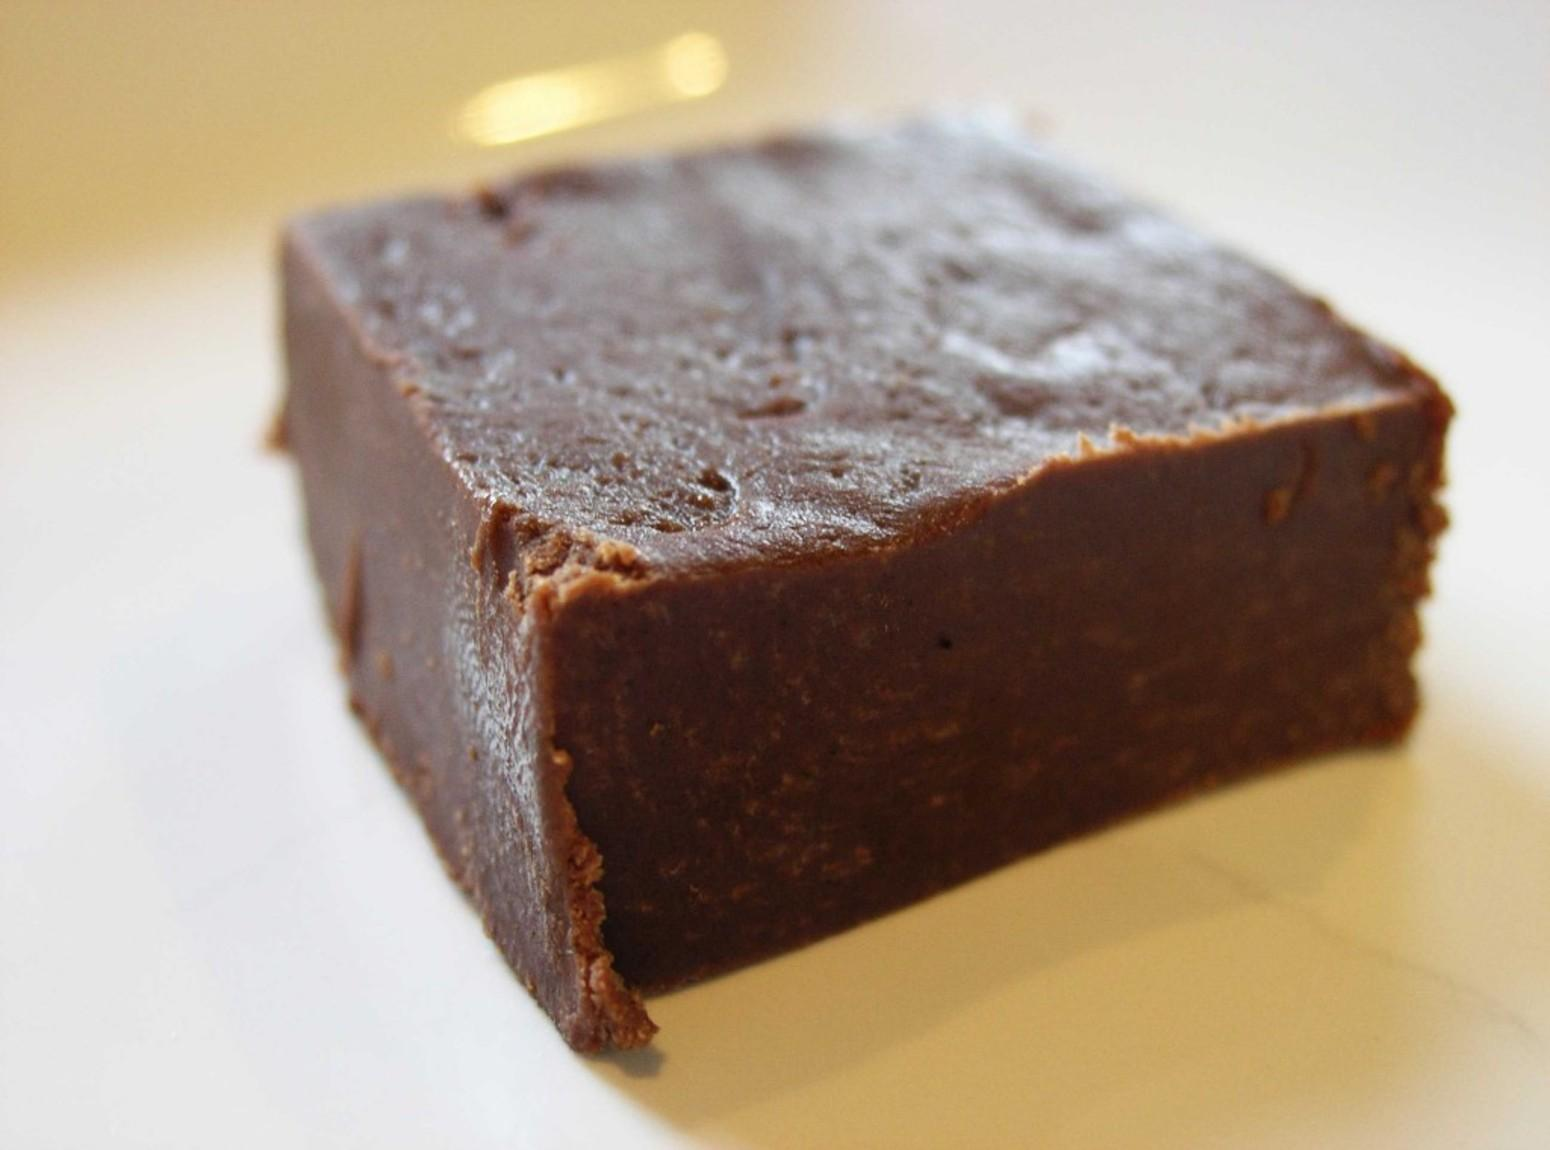 Cheap 'n' Easy Fudge Recipe